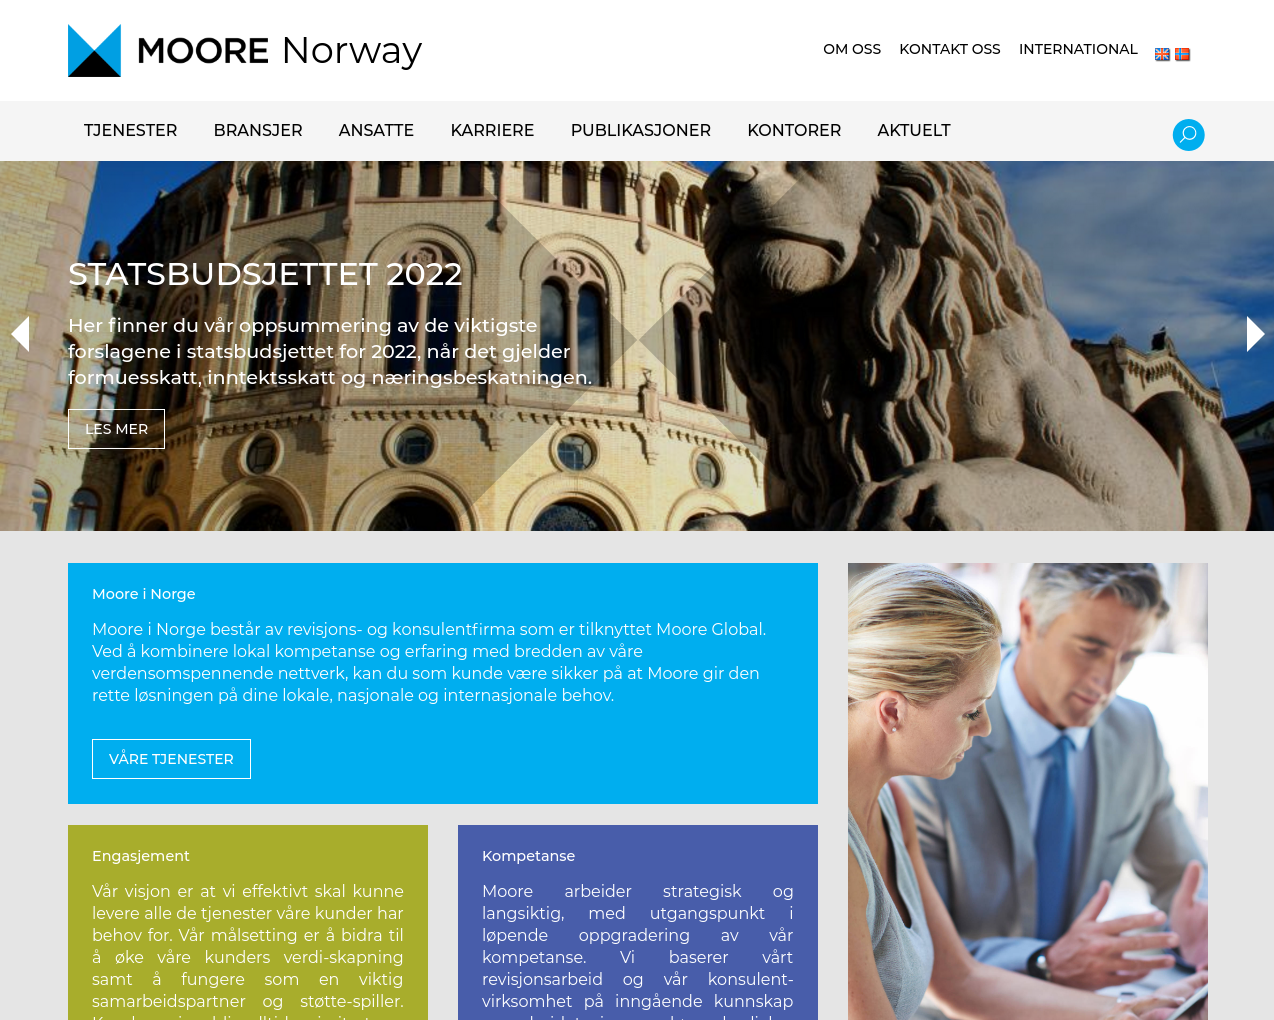 moore-norway.no presentation